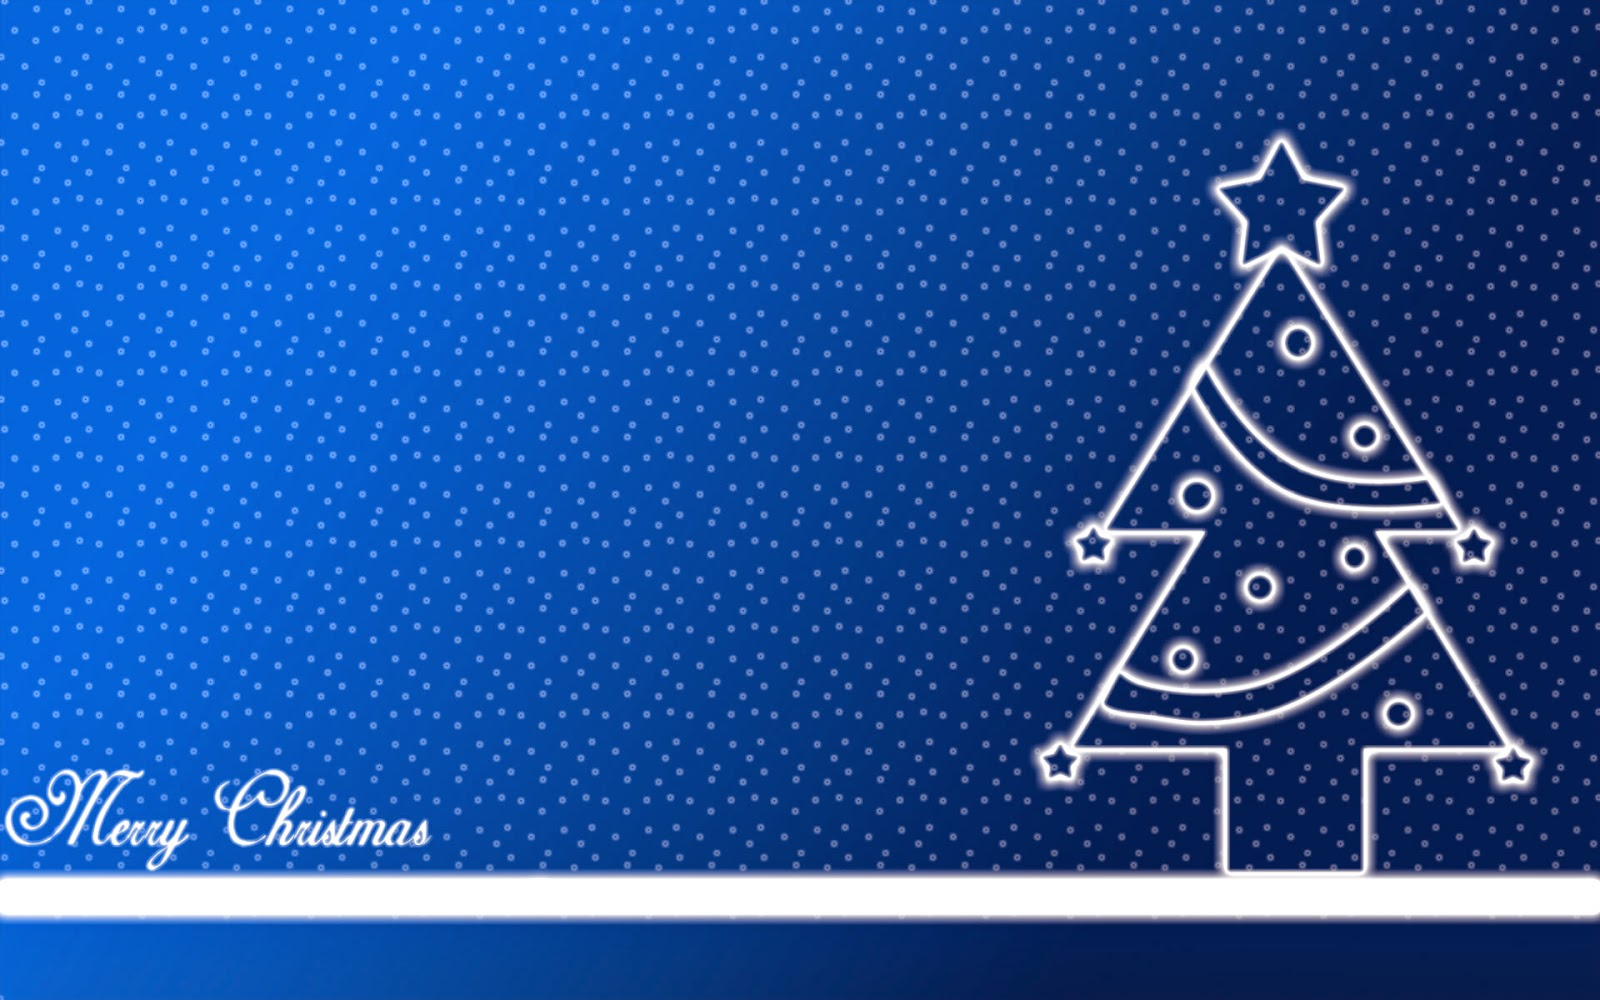 merry-Christmas-vector-design-template-images-with-xmas-tree-Blue-BG-white-text.jpg